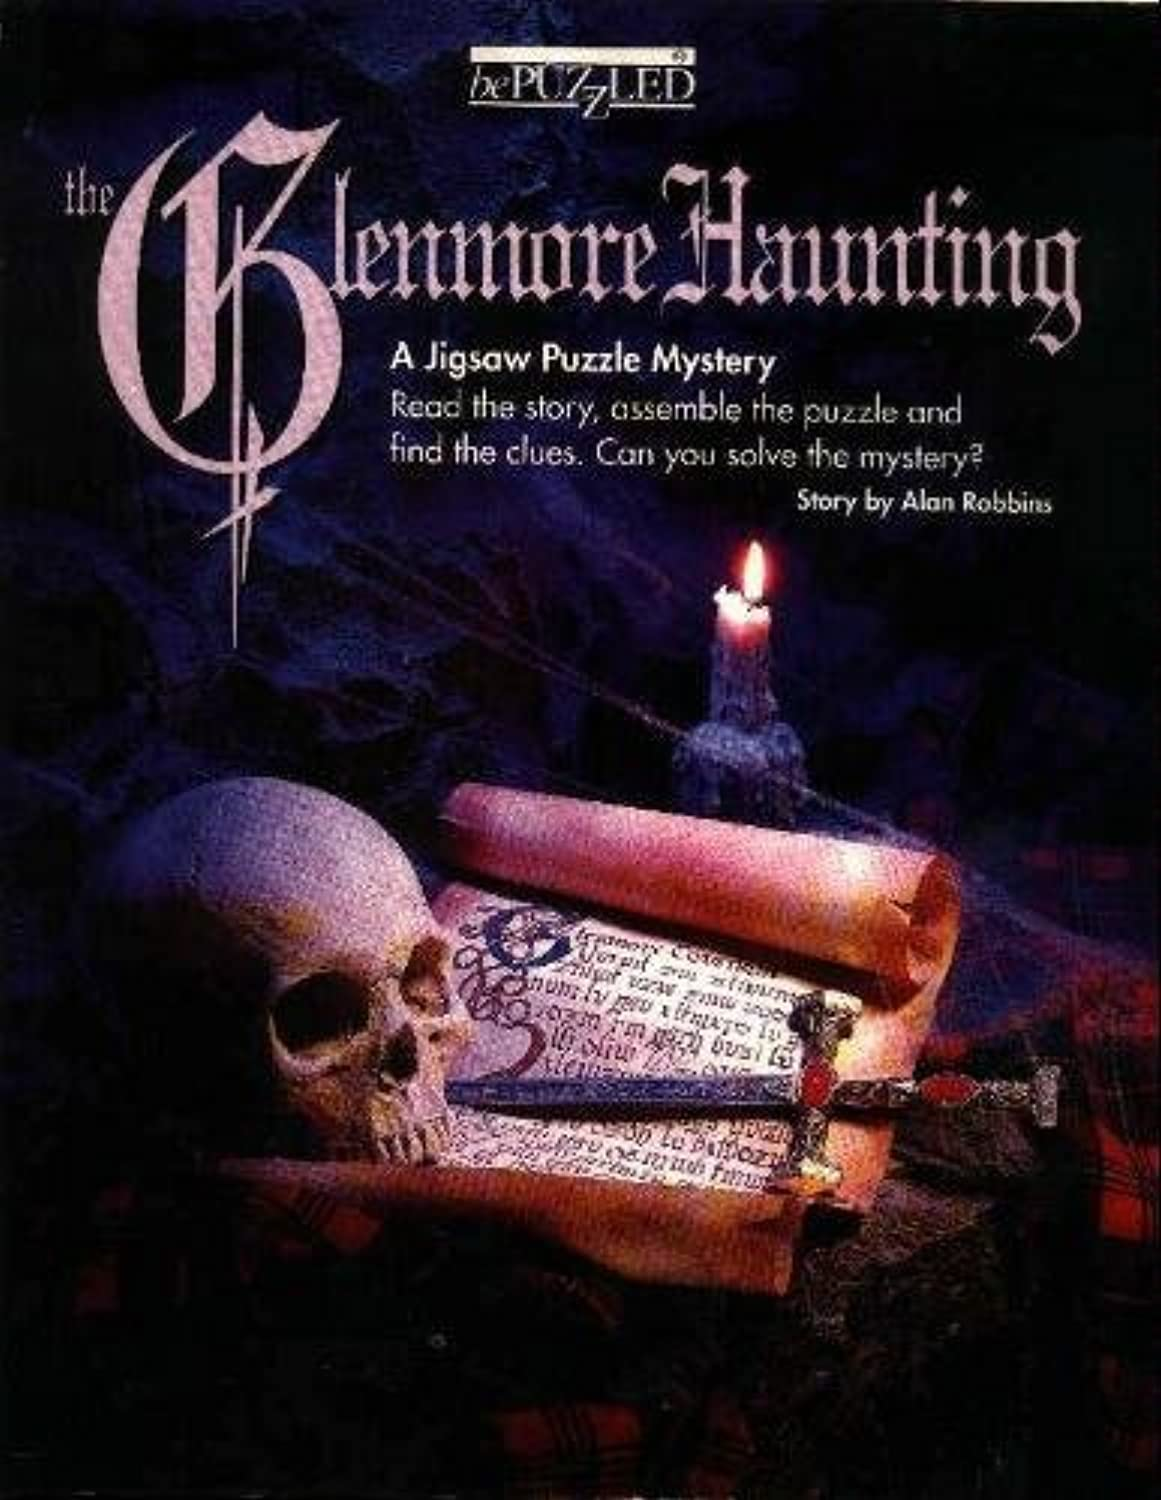 The Glenmore Haunting, Assembled size  23  x 29